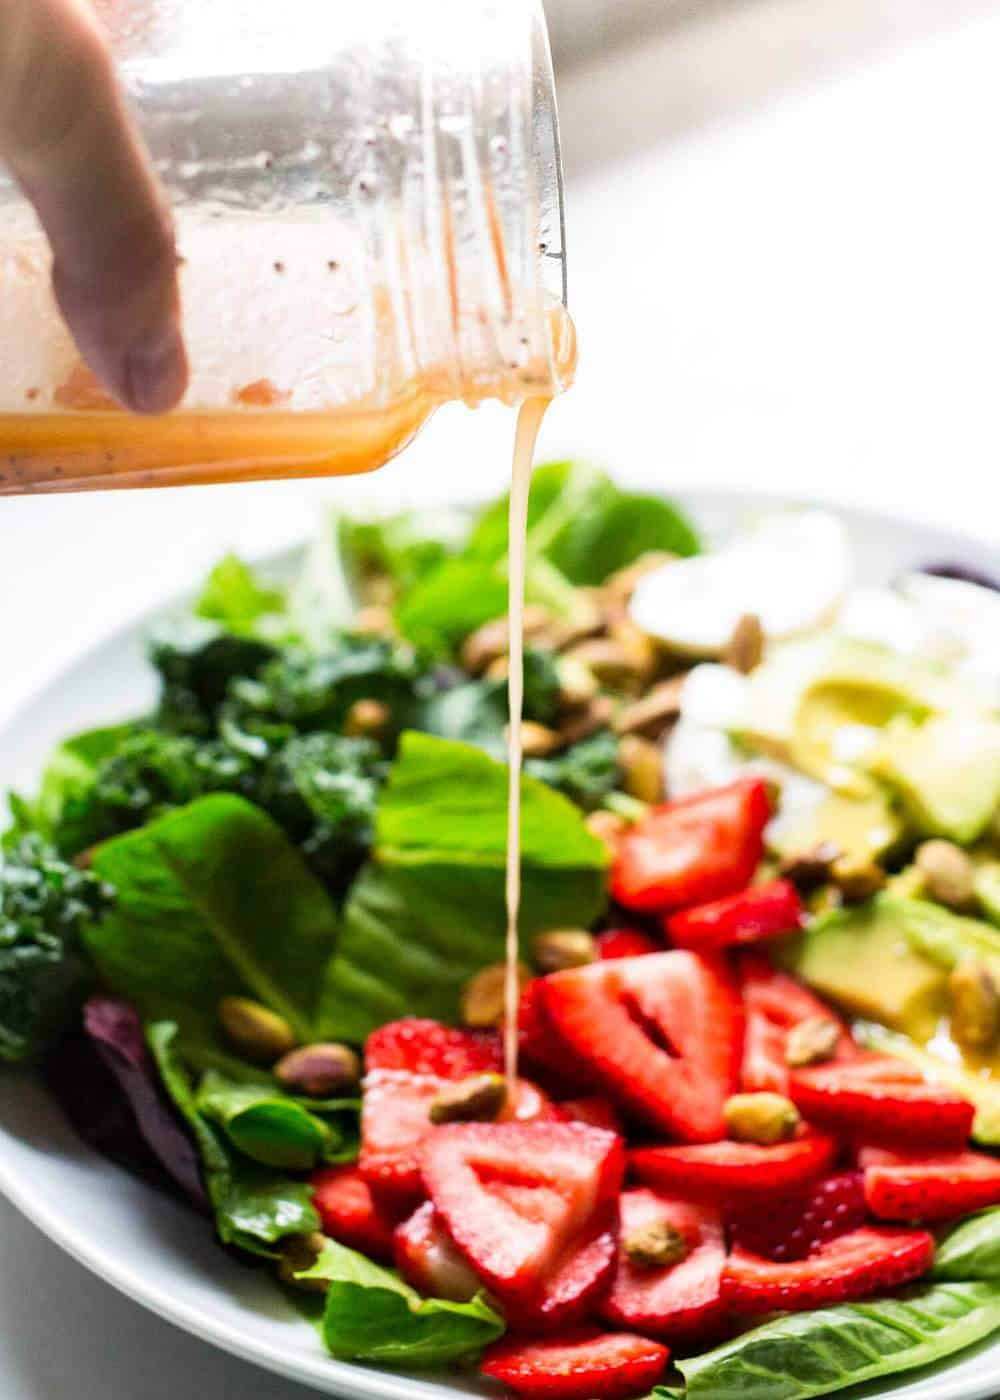 pouring poppyseed dressing over strawberry burrata salad